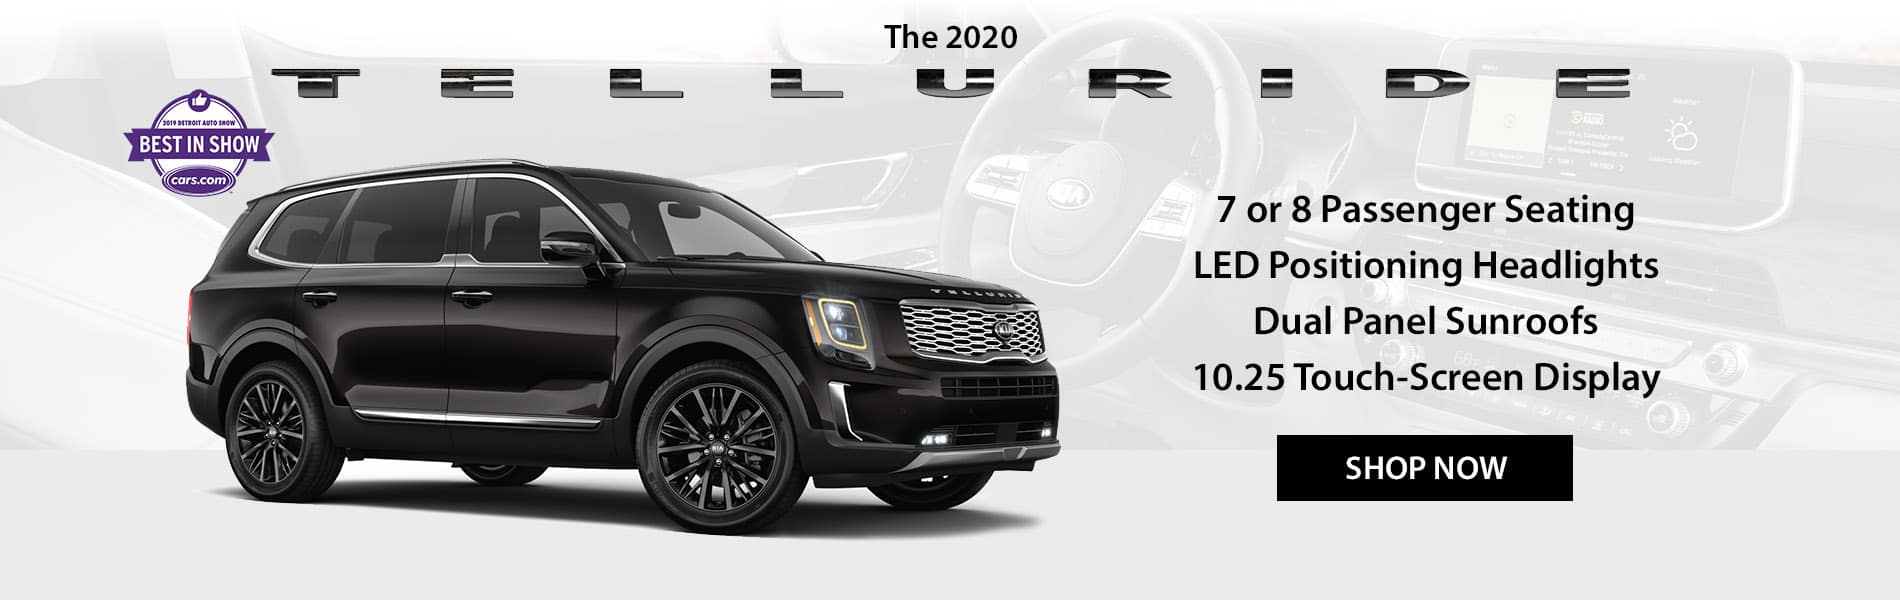 The first ever 2020 Kia Telluride is now available at Beaverton Kia.